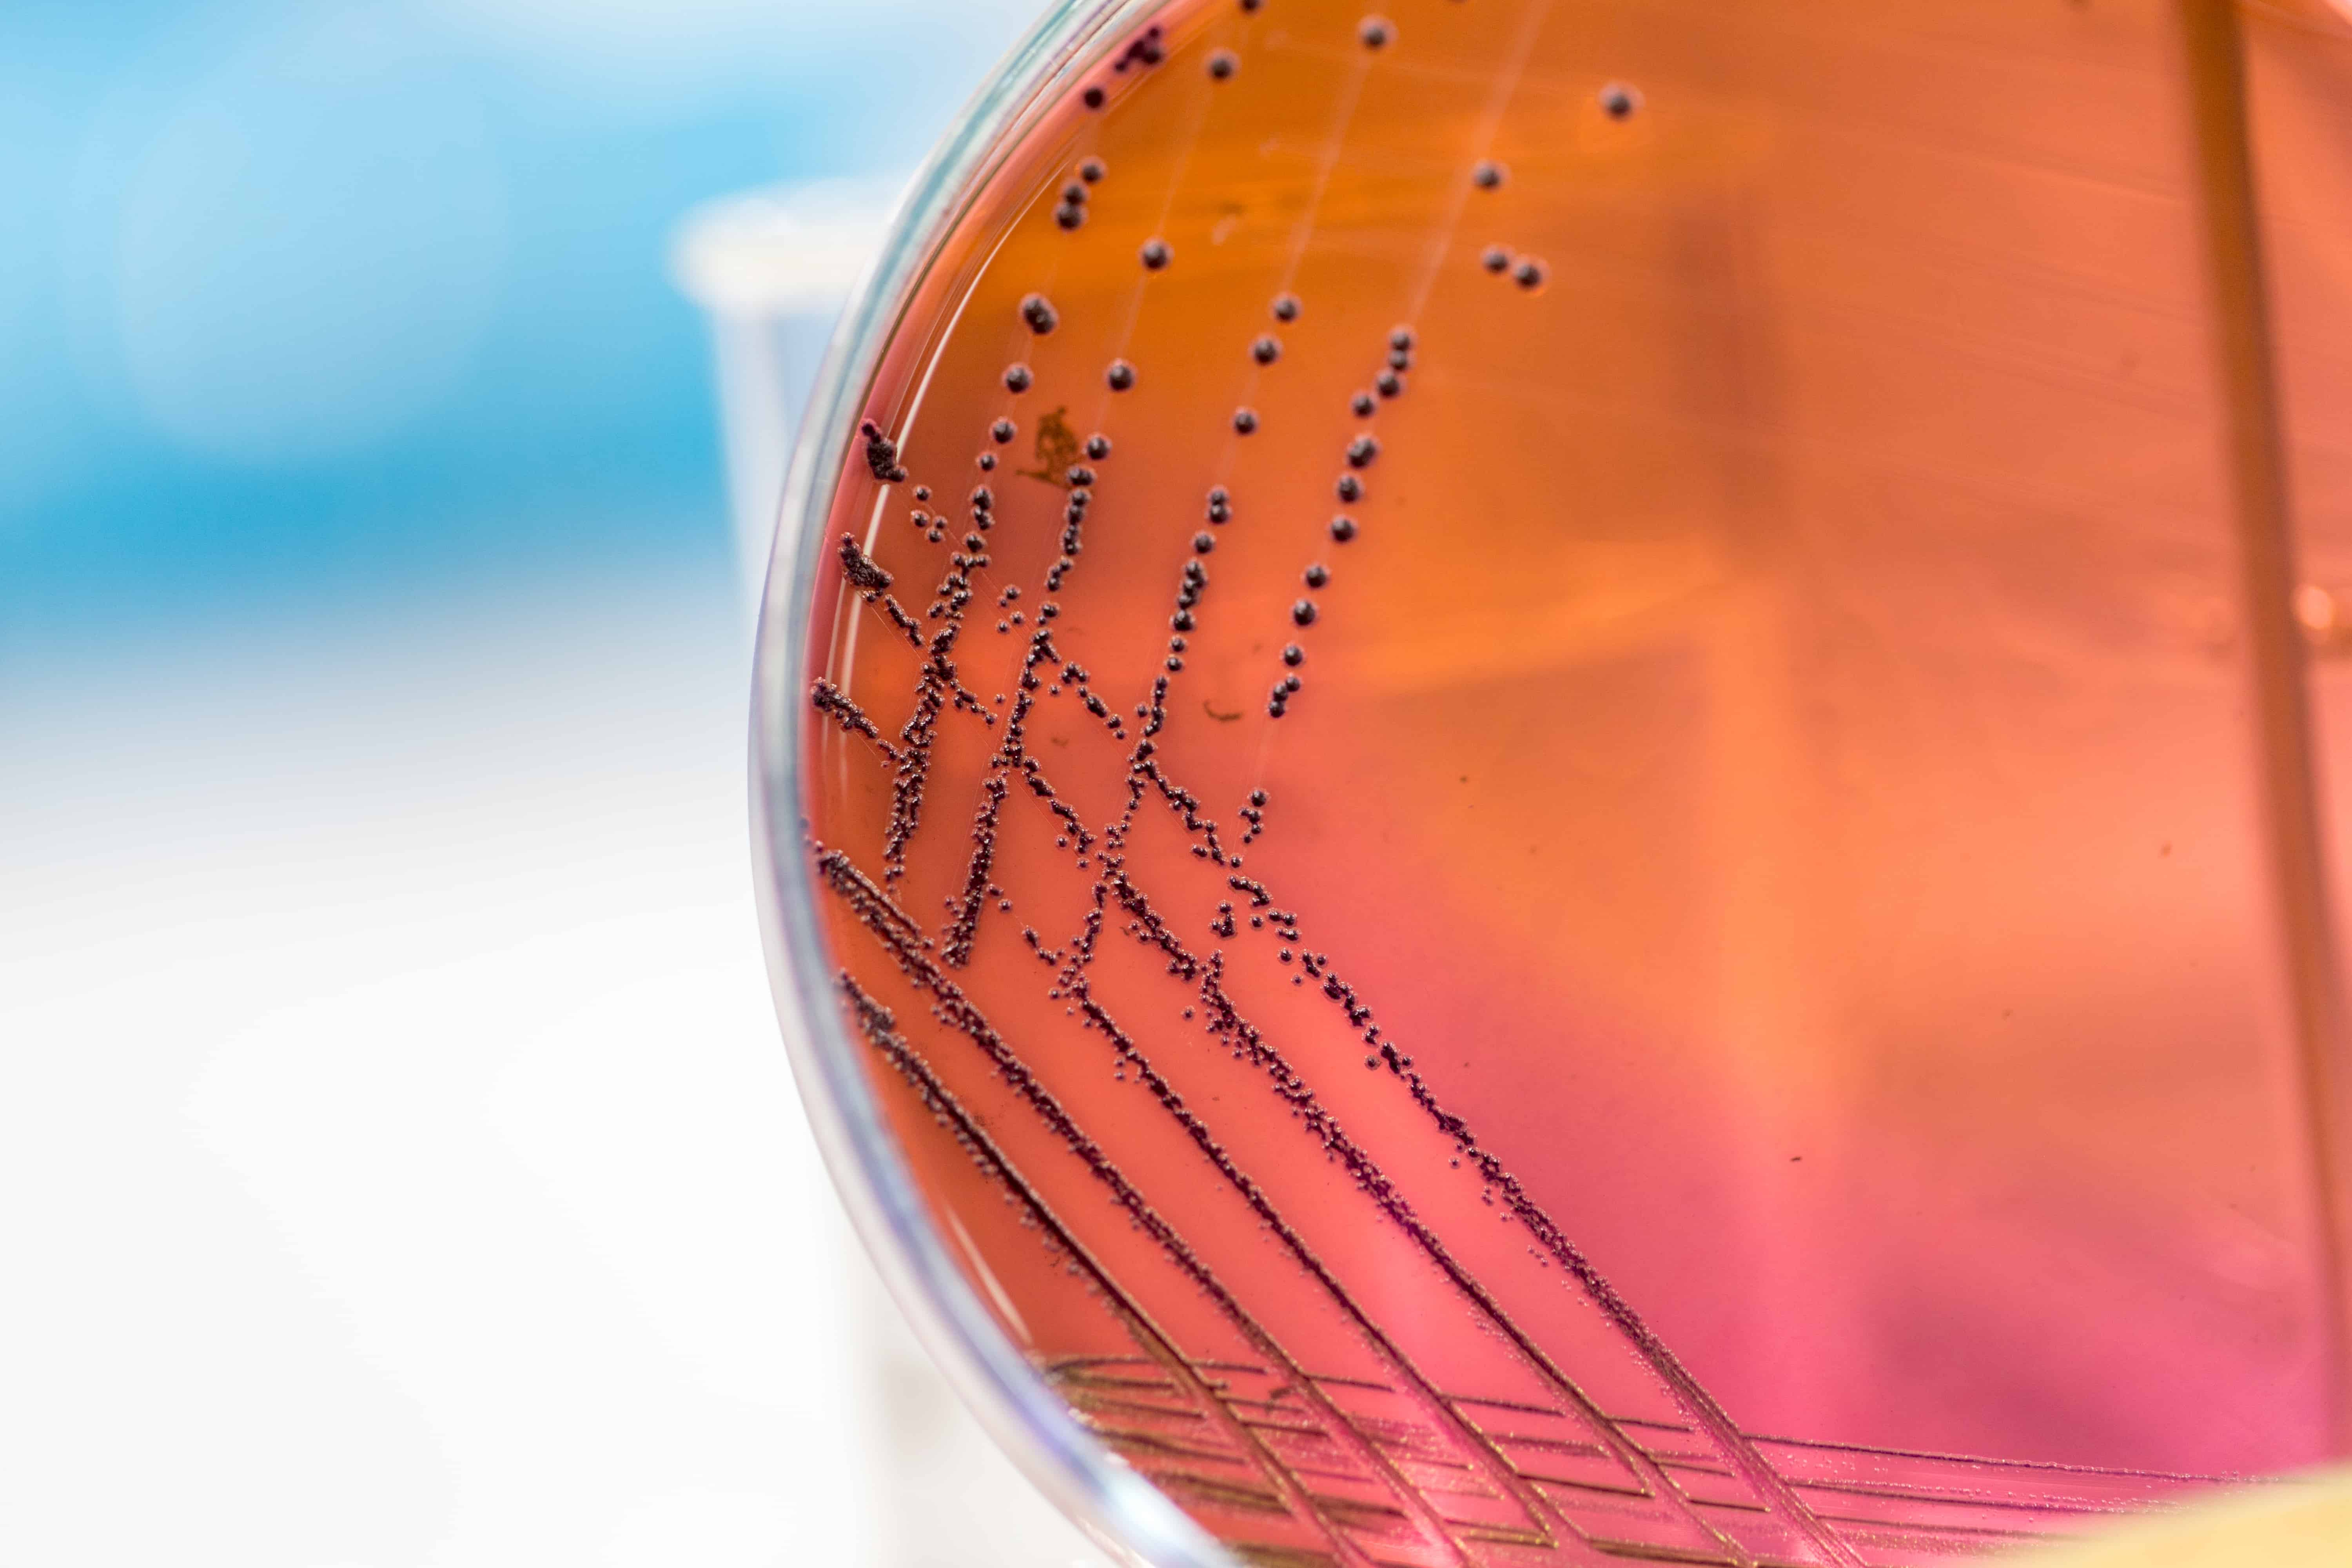 Weekly Digest: Resistant Klebsiella and E. coli widespread across Southeast Asia; Global measles cases have tripled since last year; Antibiotic use increases odds of rheumatoid arthritis.